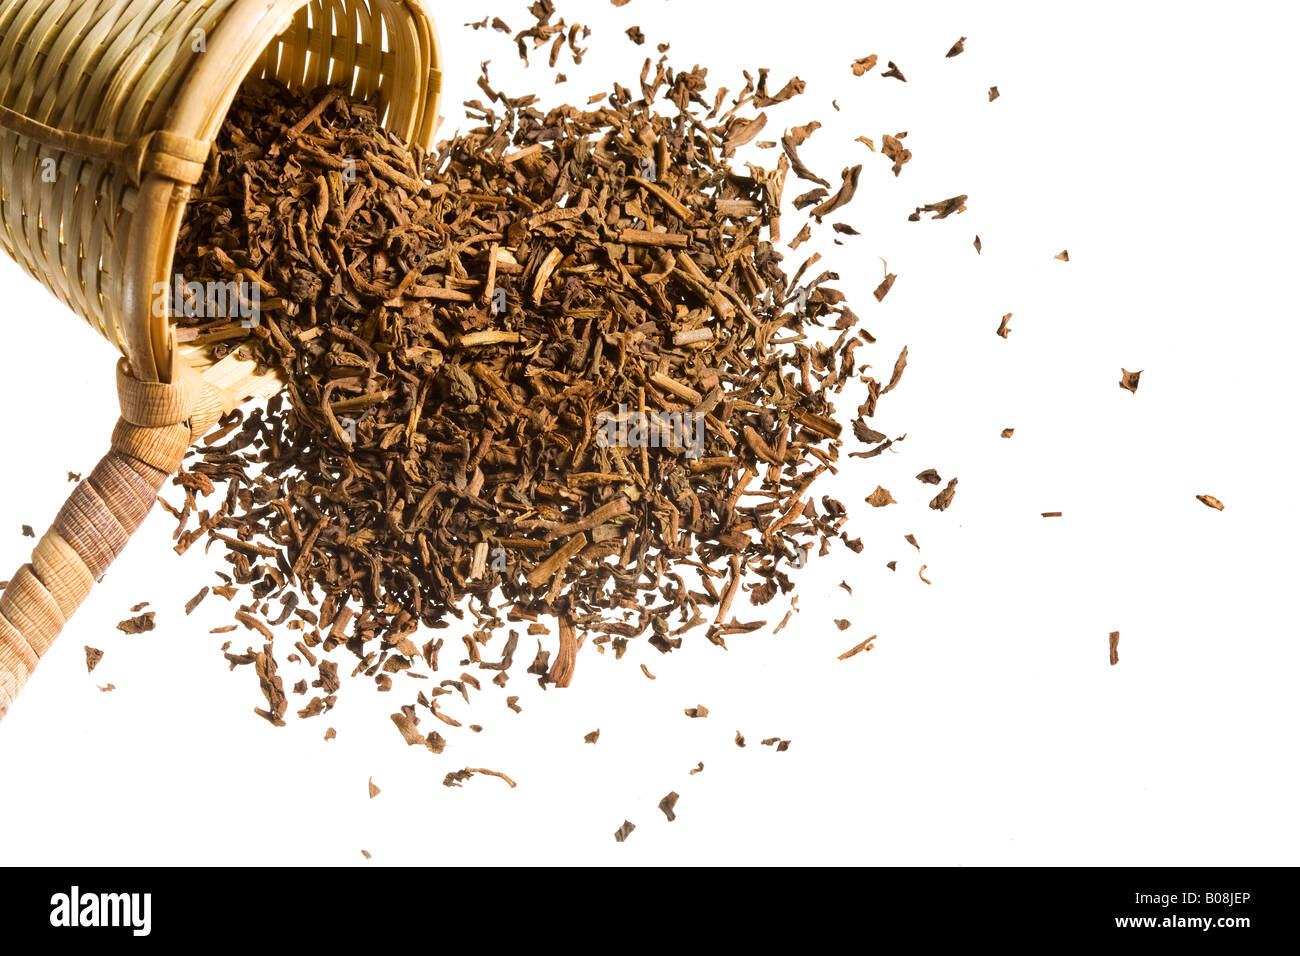 An overflowing heap of raw tea spills out of a woven scooper. Stock Photo